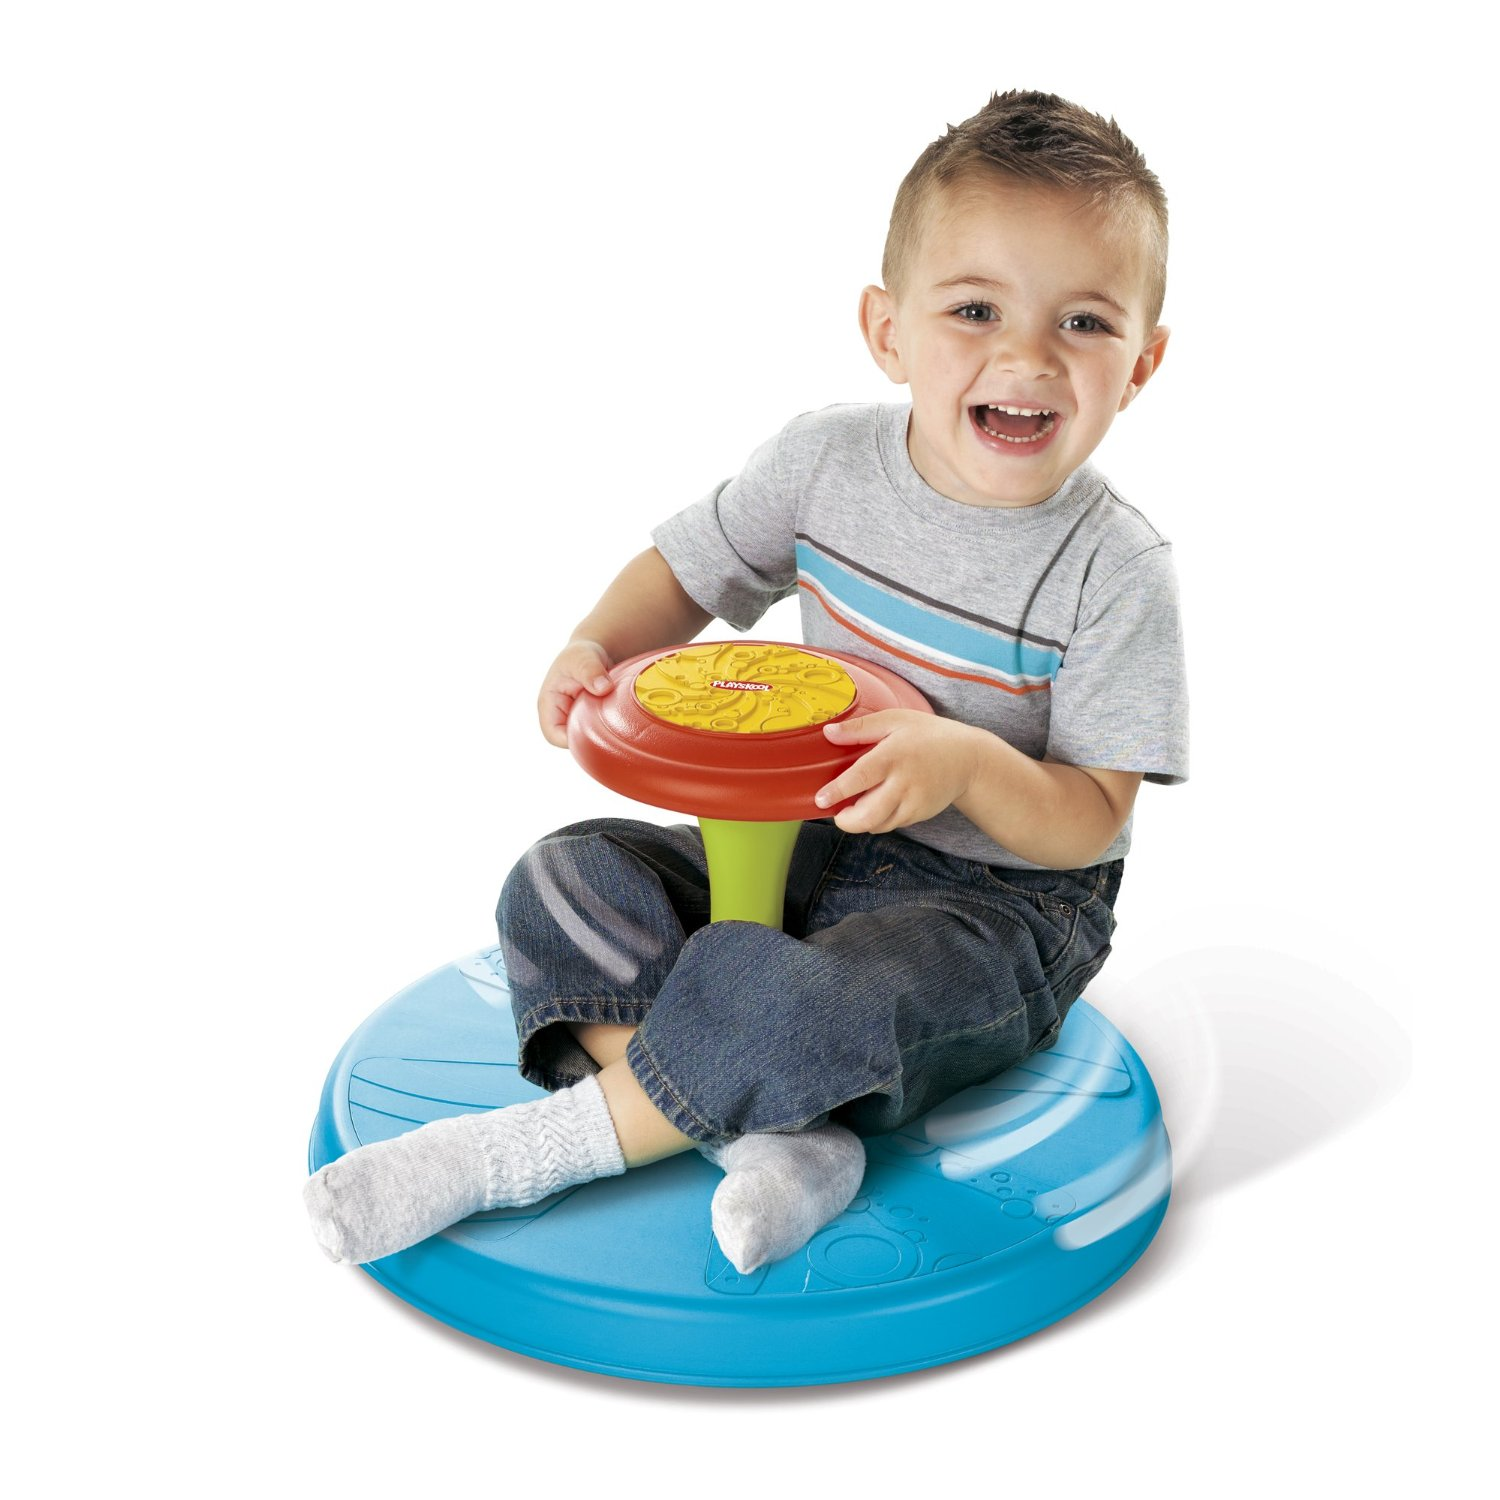 Playskool Sit N Spin Toy Only 12 50 Reg 29 99